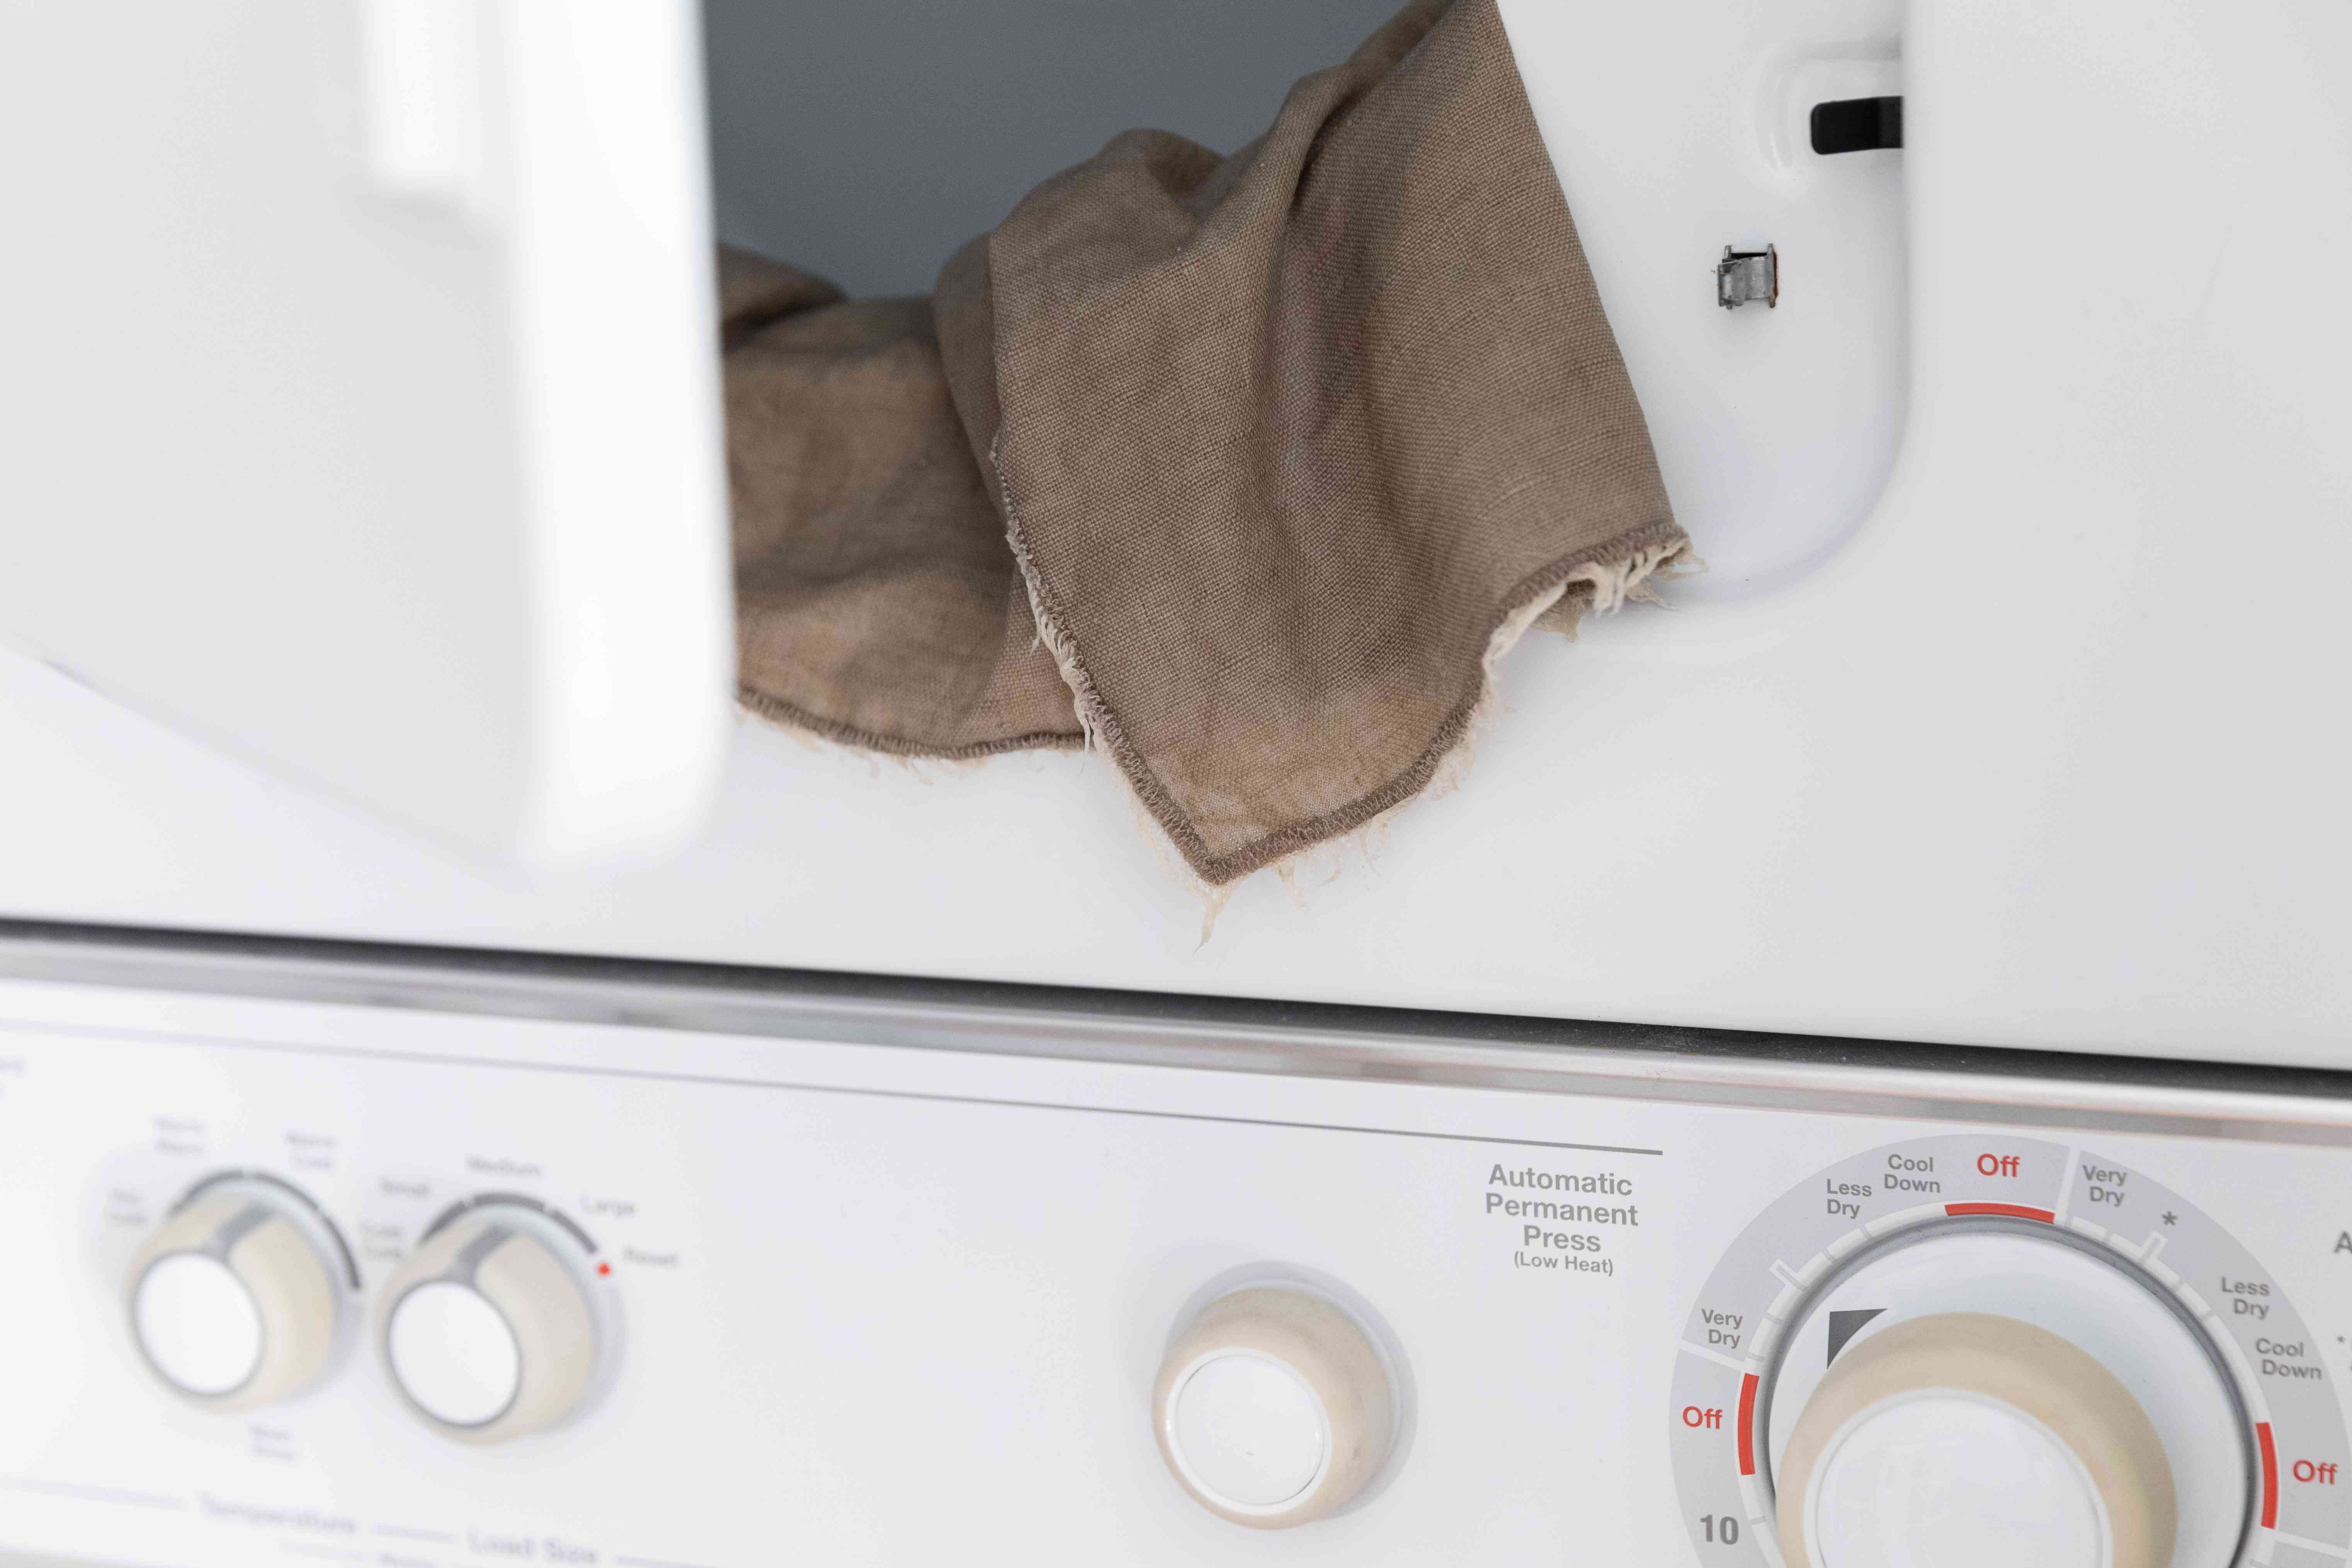 loading the linen into the dryer